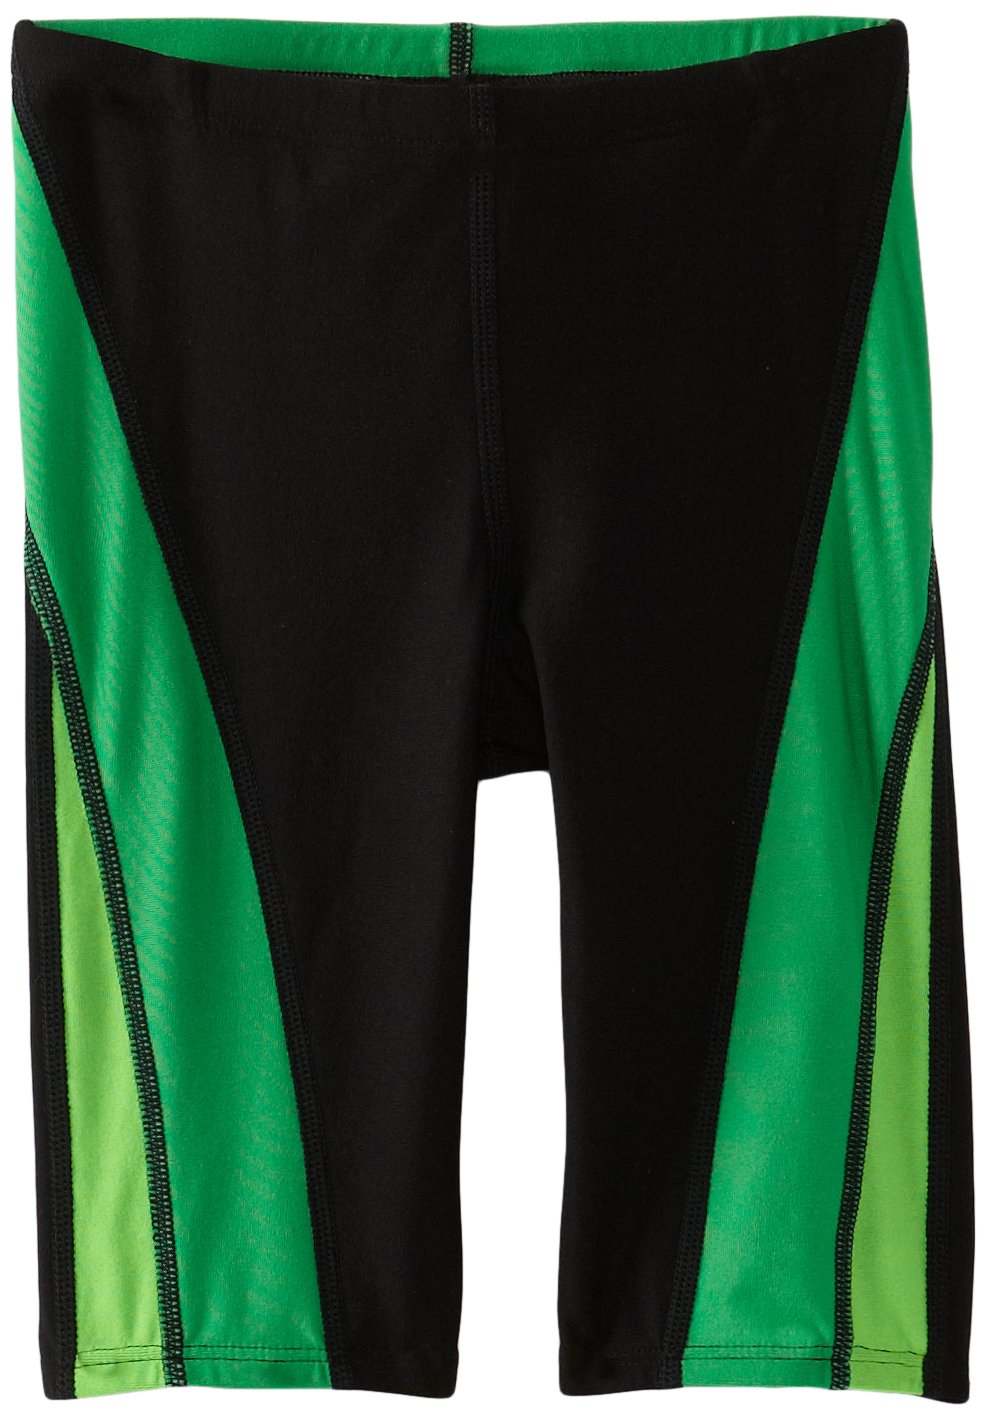 【楽天スーパーセール】 (24 Swimsuit/8, Launch (24/8, Black Green) - Speedo Big Boys' Youth Launch Splice Jammer Swimsuit B00DDZJQCC, 自転車通販チャレンジ21:cdf55c8d --- sabinosports.com